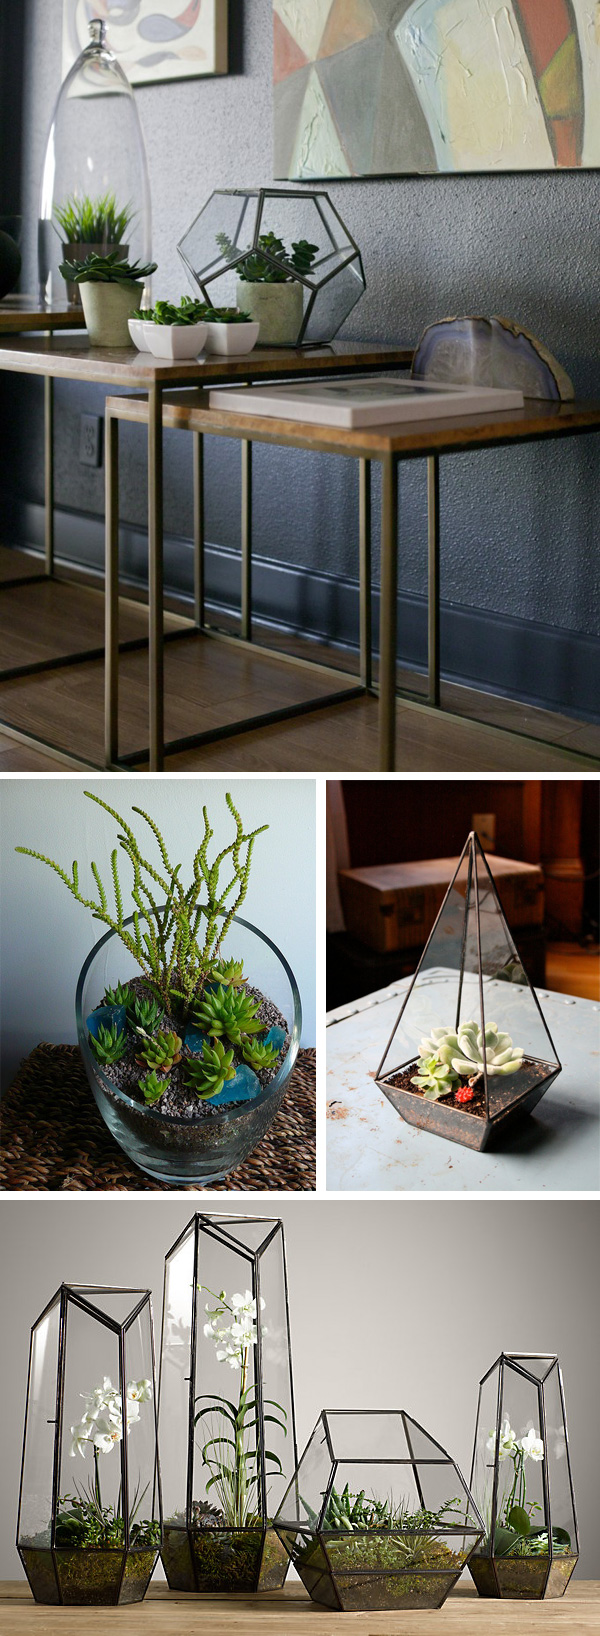 terrariums-in-modern-decor.jpg